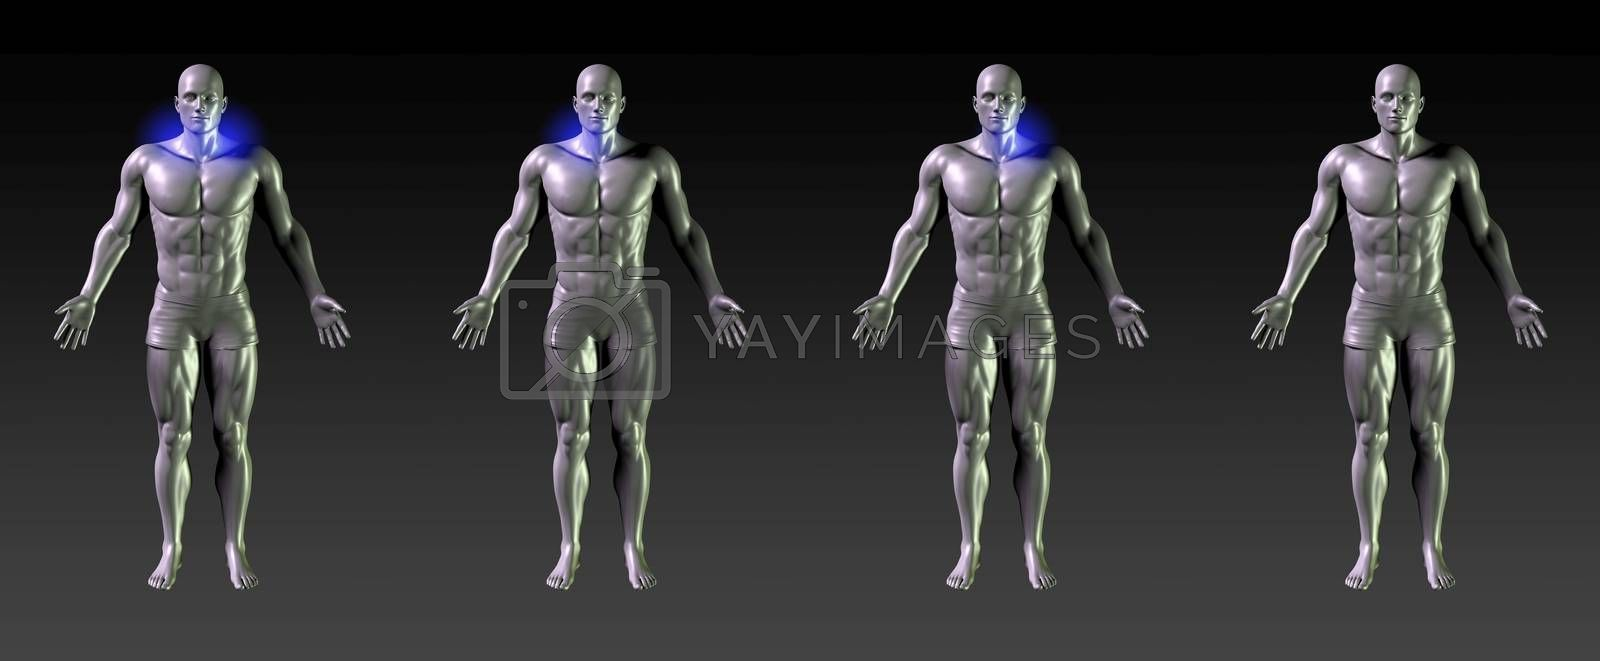 Neck Recovery or Rehabilitation with Blue Glow